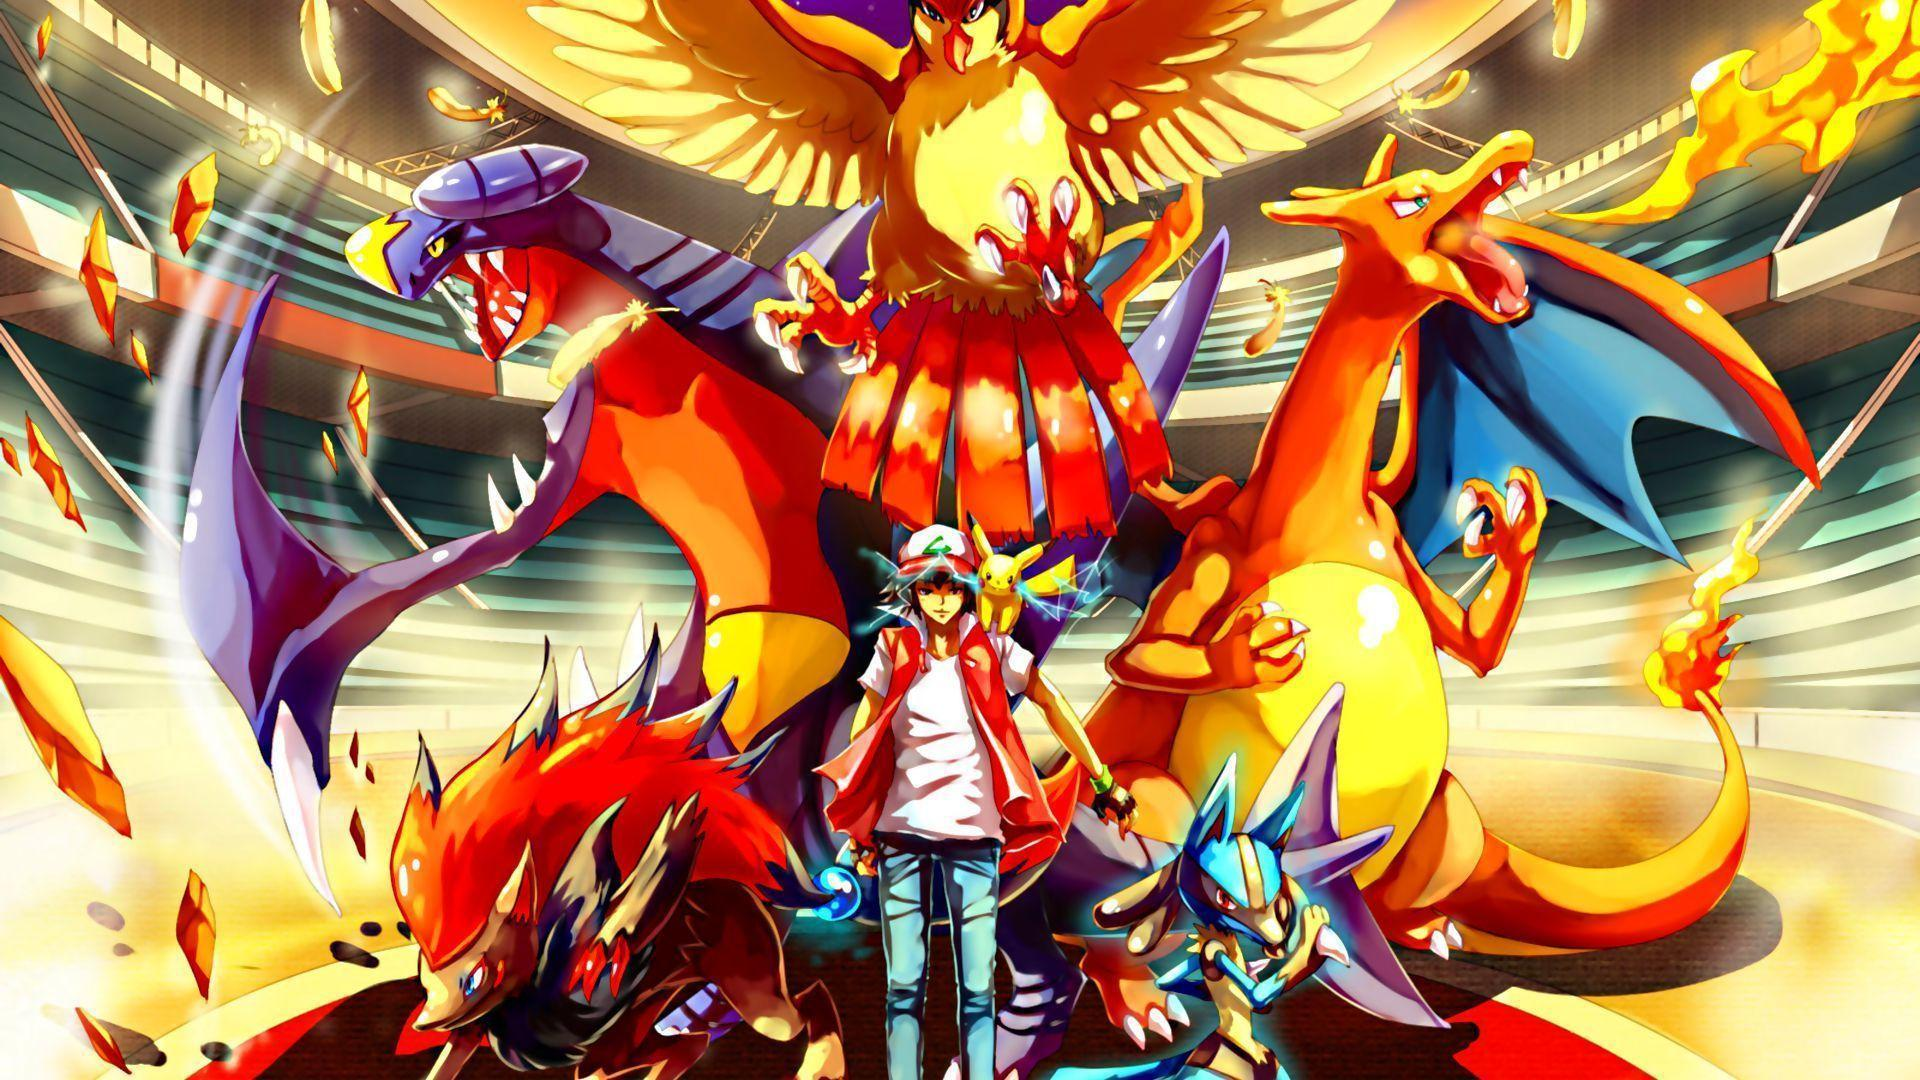 Cool Pokemon Backgrounds - Wallpaper Cave